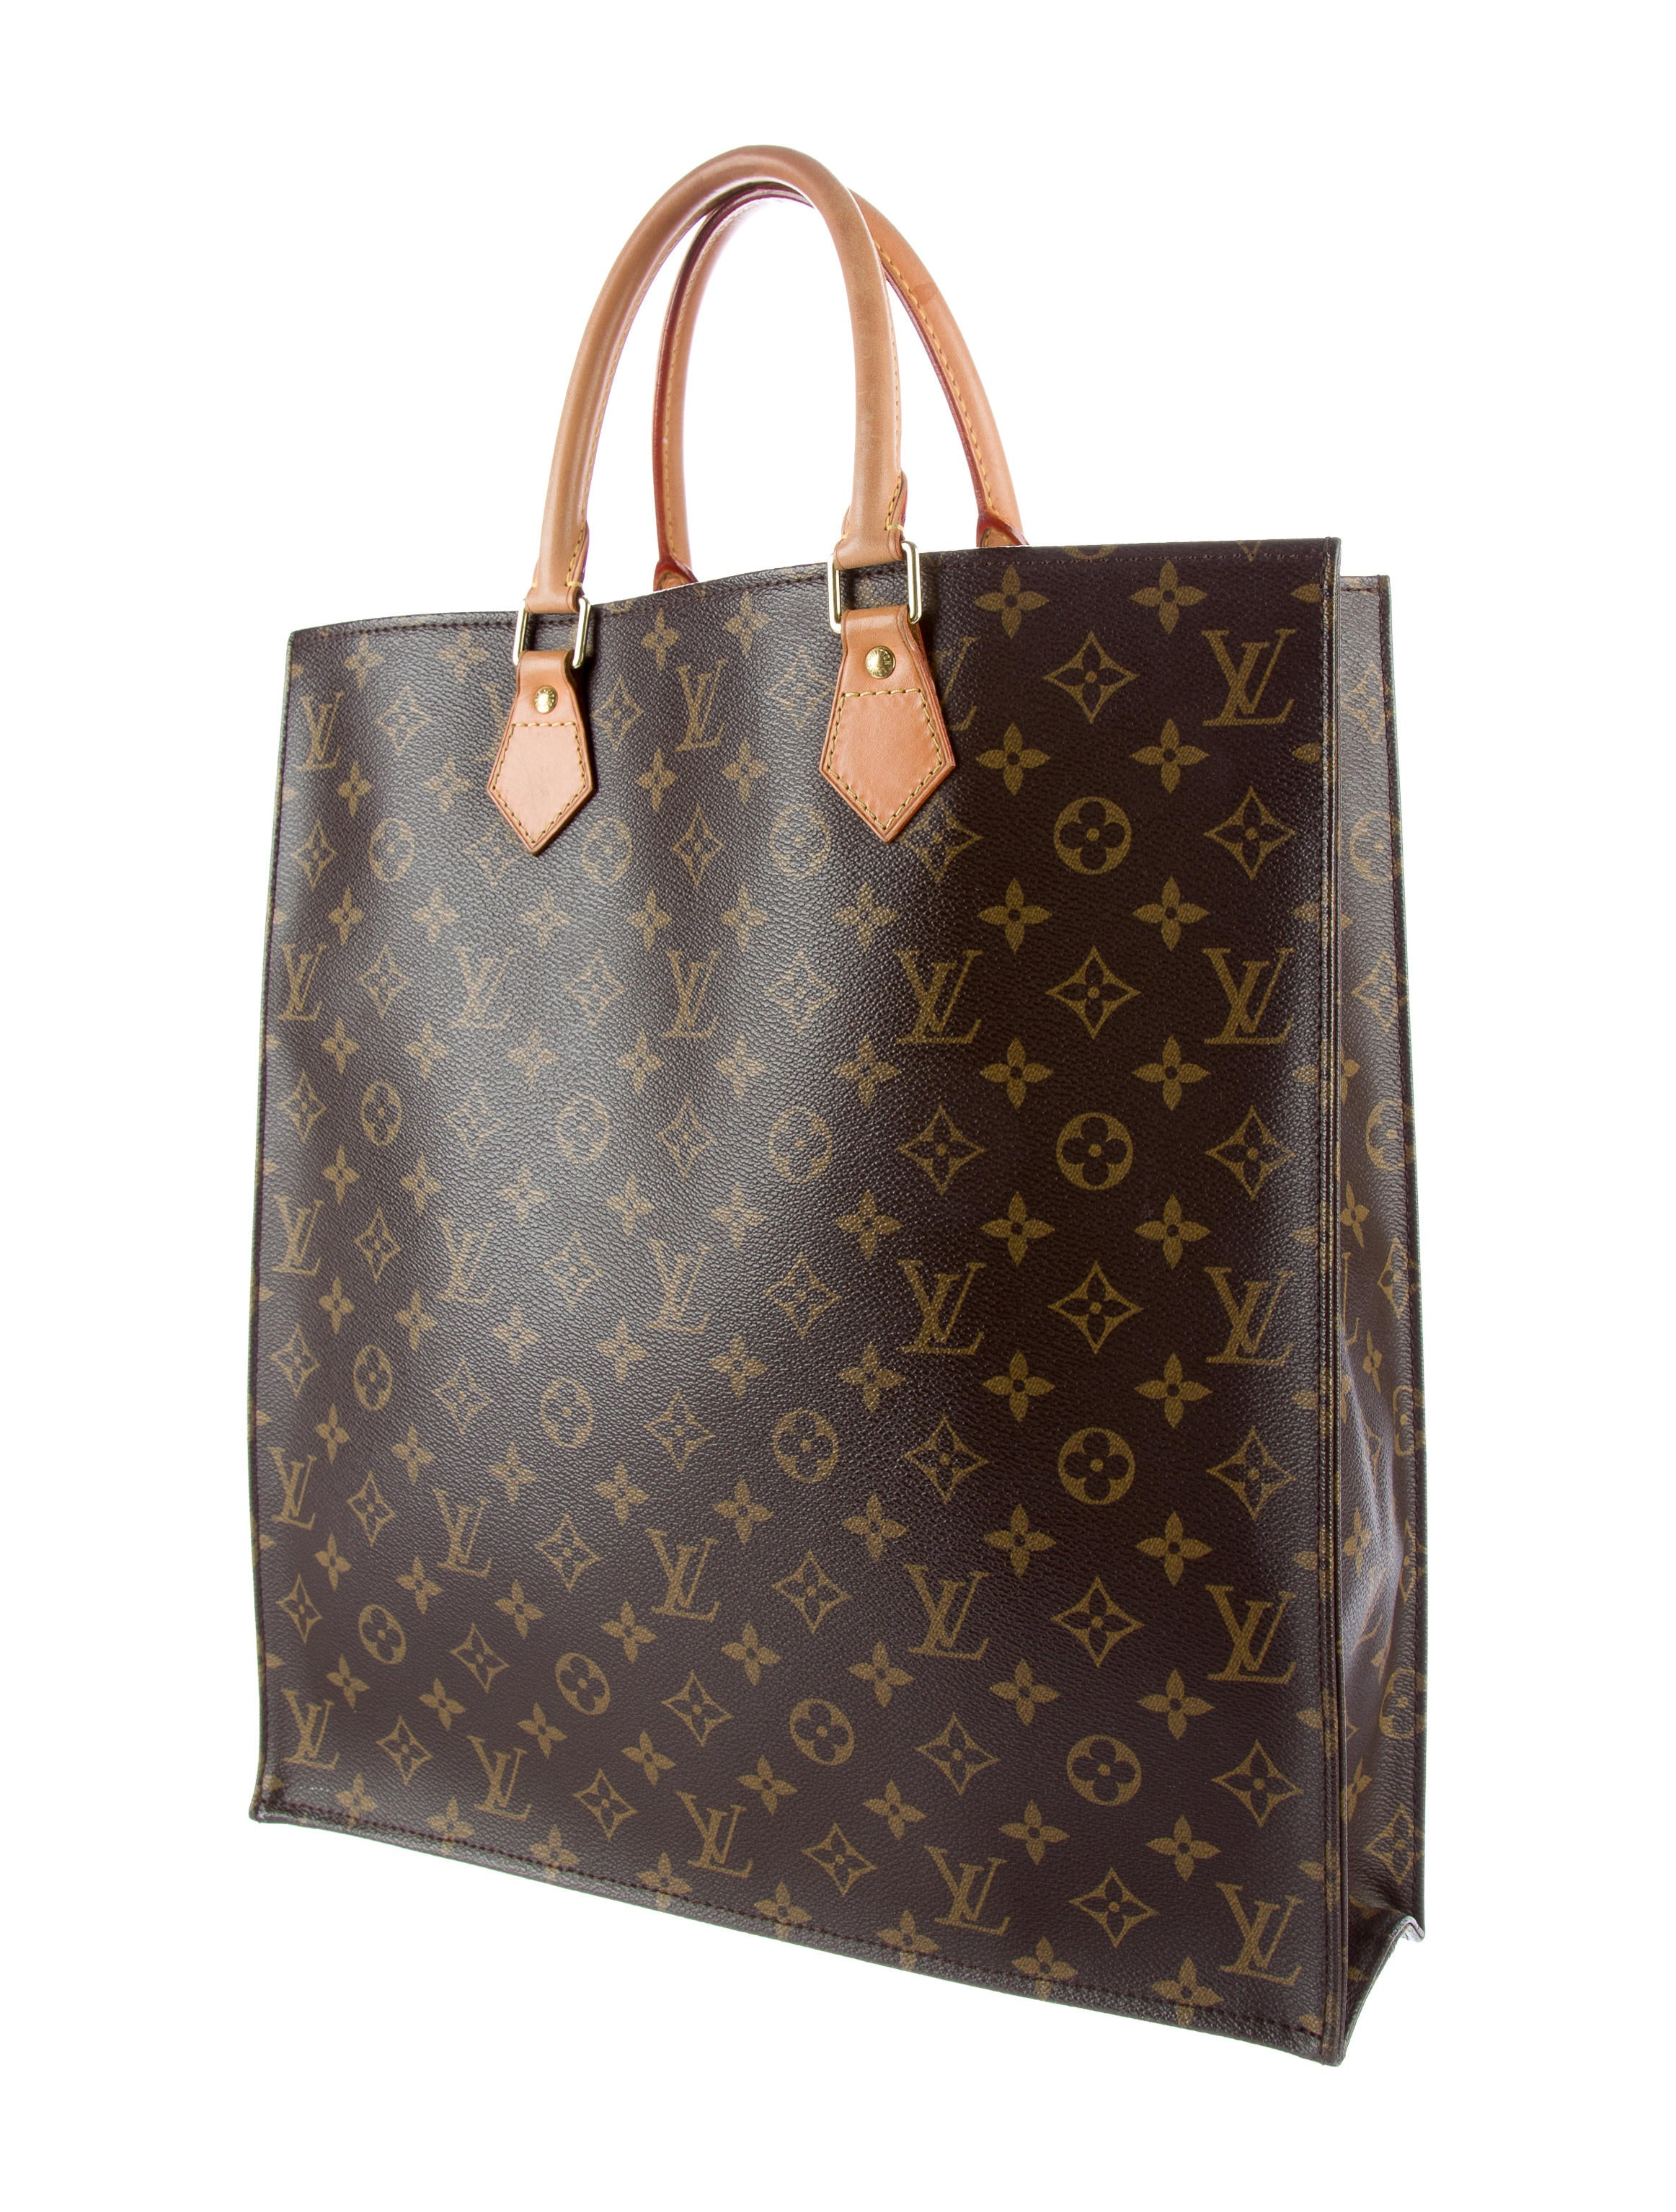 Louis vuitton monogram sac plat bags lou122474 the for Louis vuitton monogram miroir sac plat